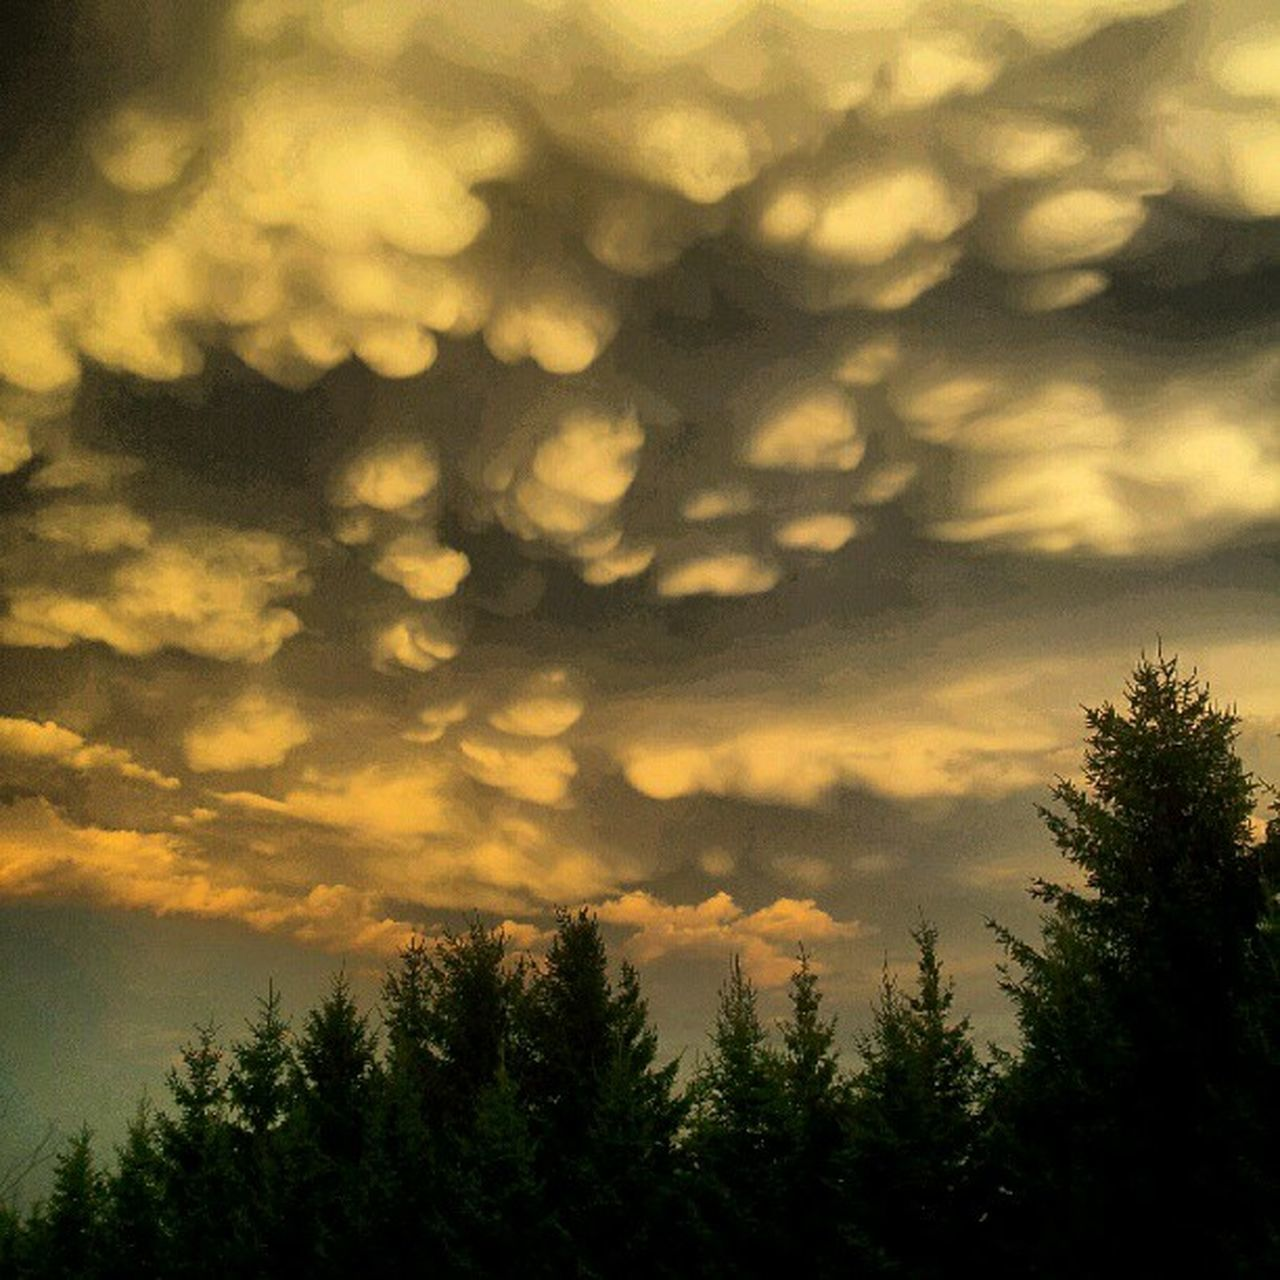 Nature Nature Photography Unbelievable Views Unbelievable Clouds Amazingweather Naturephotography Nature Is Art Nature Is Beautiful Nature Takes Over Unreal Clouds Crazyclouds Adventure Club